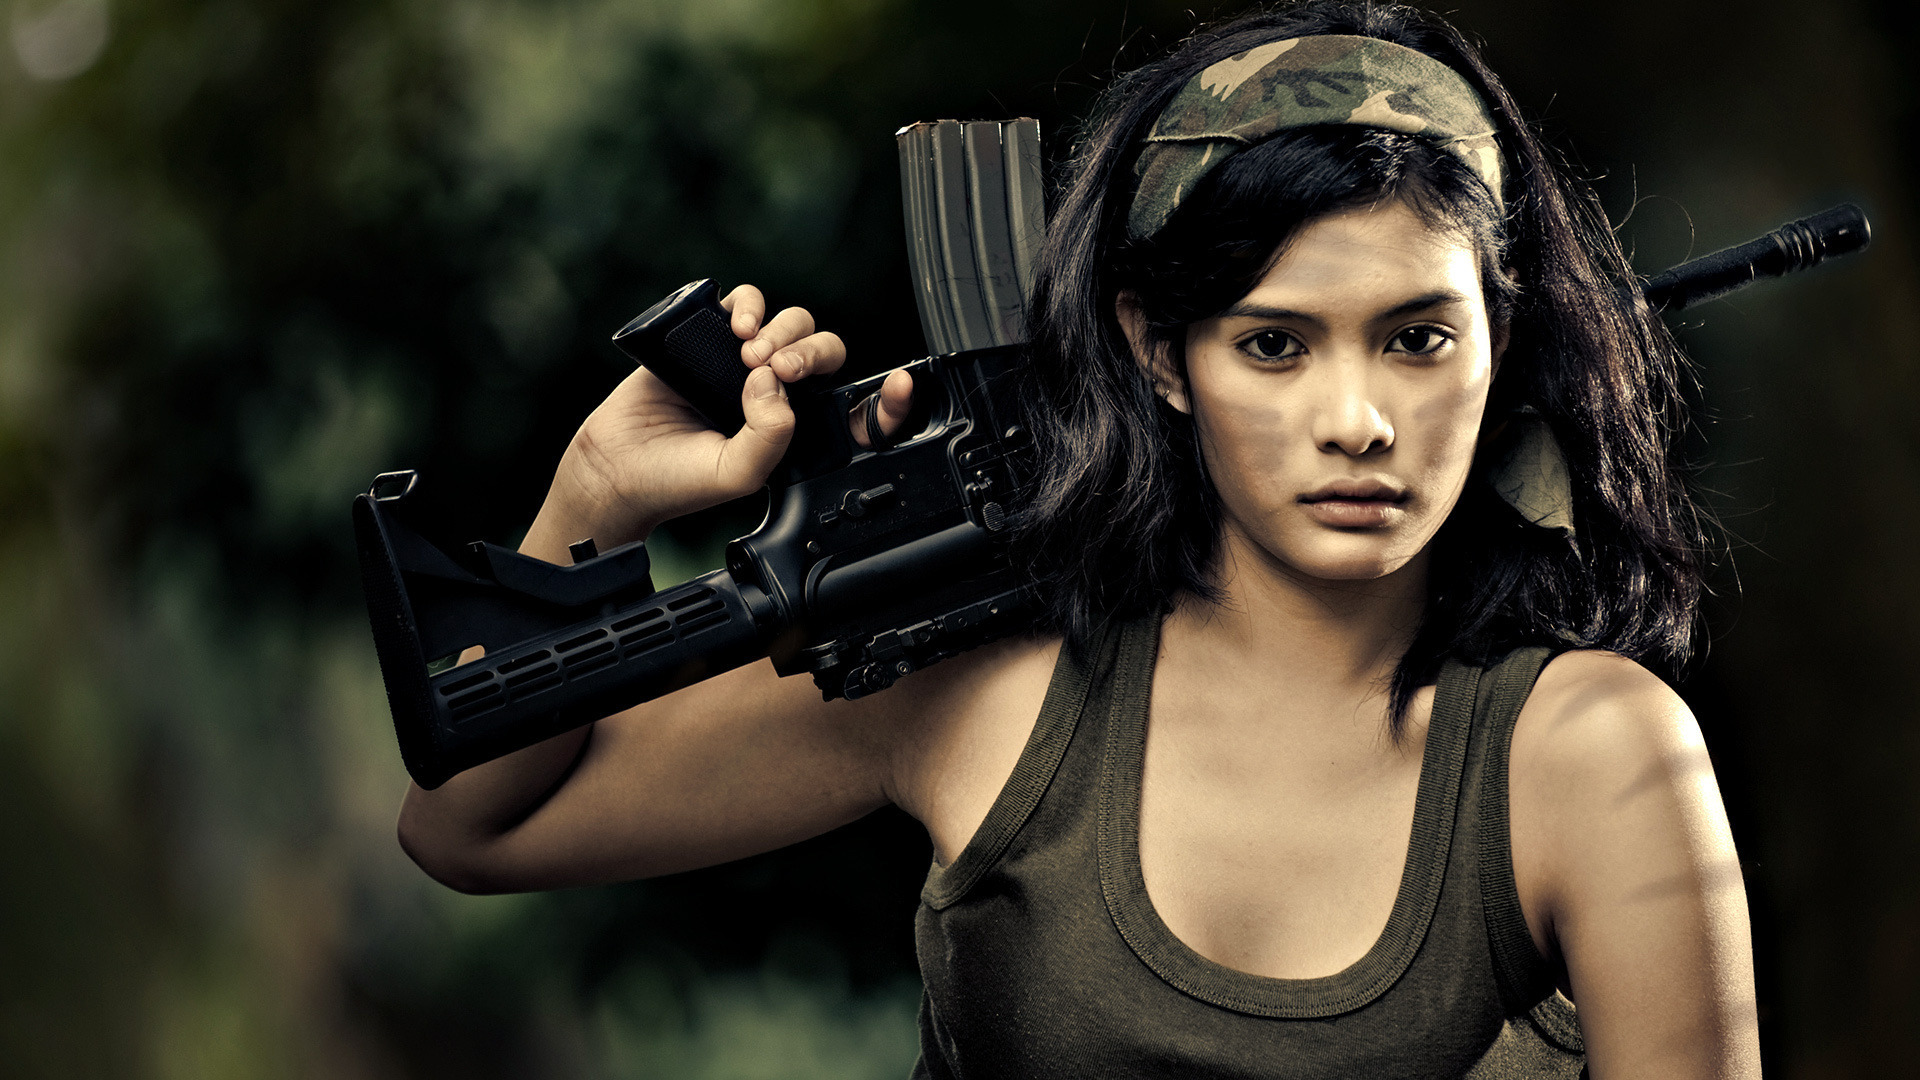 07-Women-With-Gun-Asian-Girl-Hottie